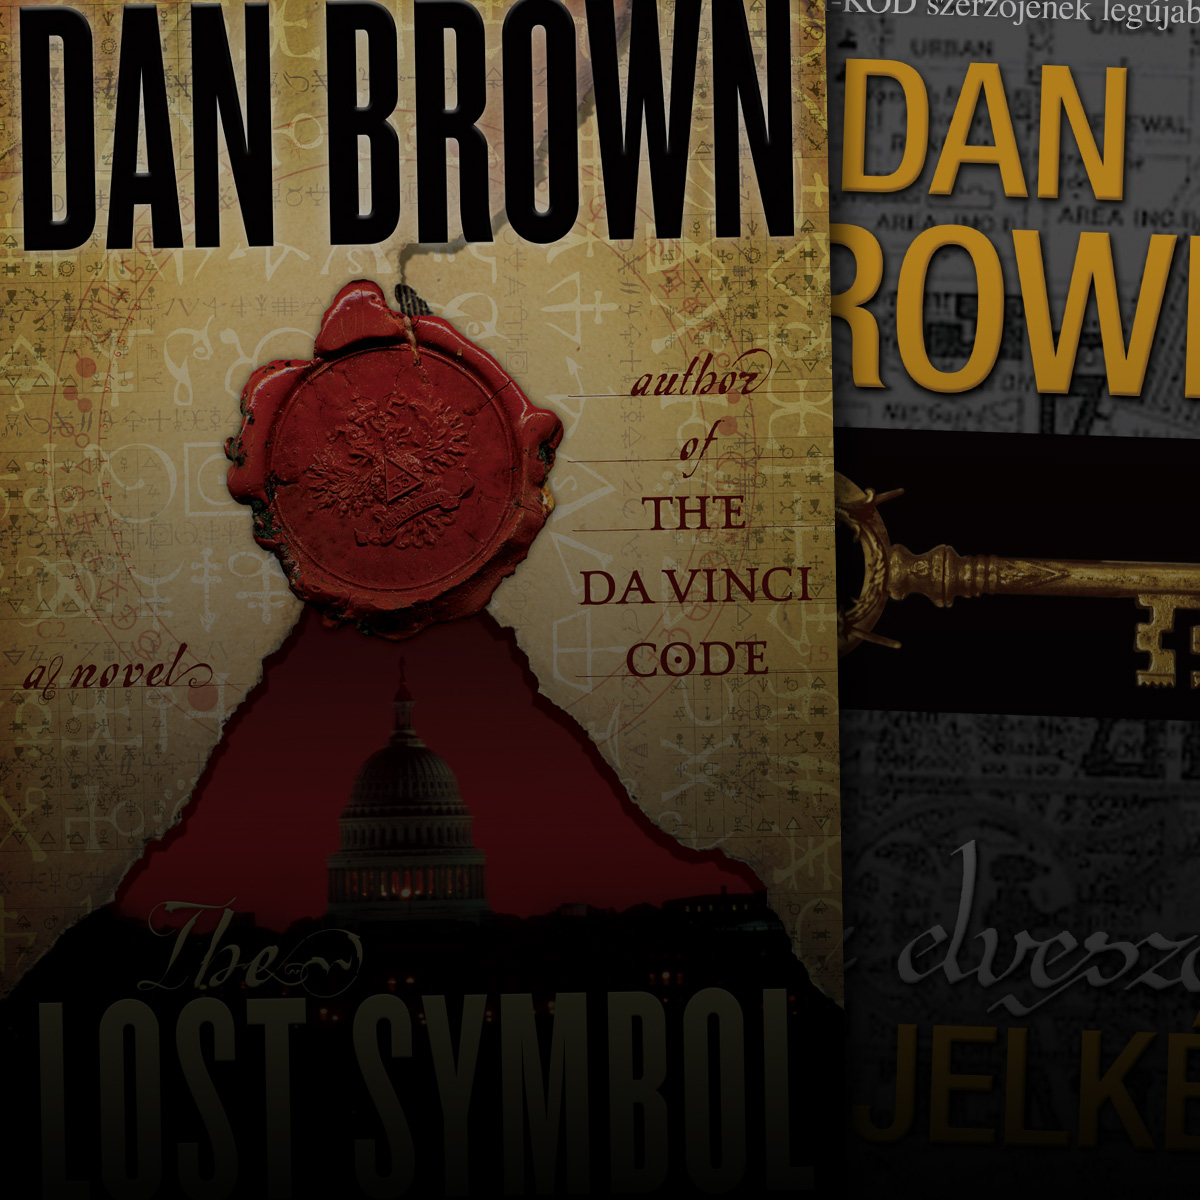 The lost symbol dan brown dctop buycottarizona Choice Image